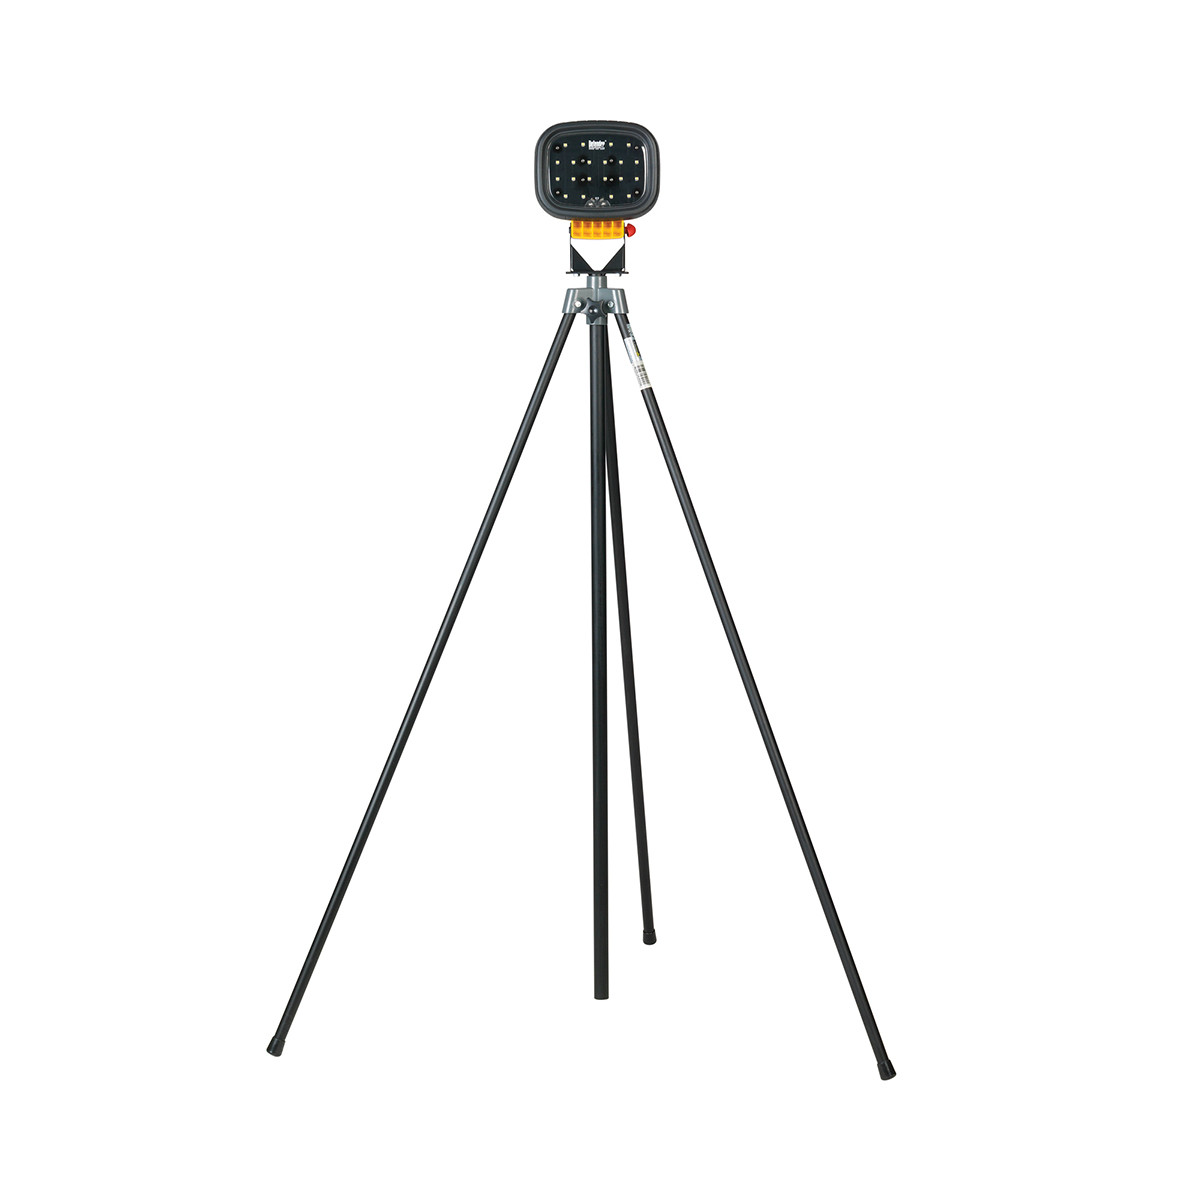 Defender LED6000 Floodlight with Swing Leg Tripod